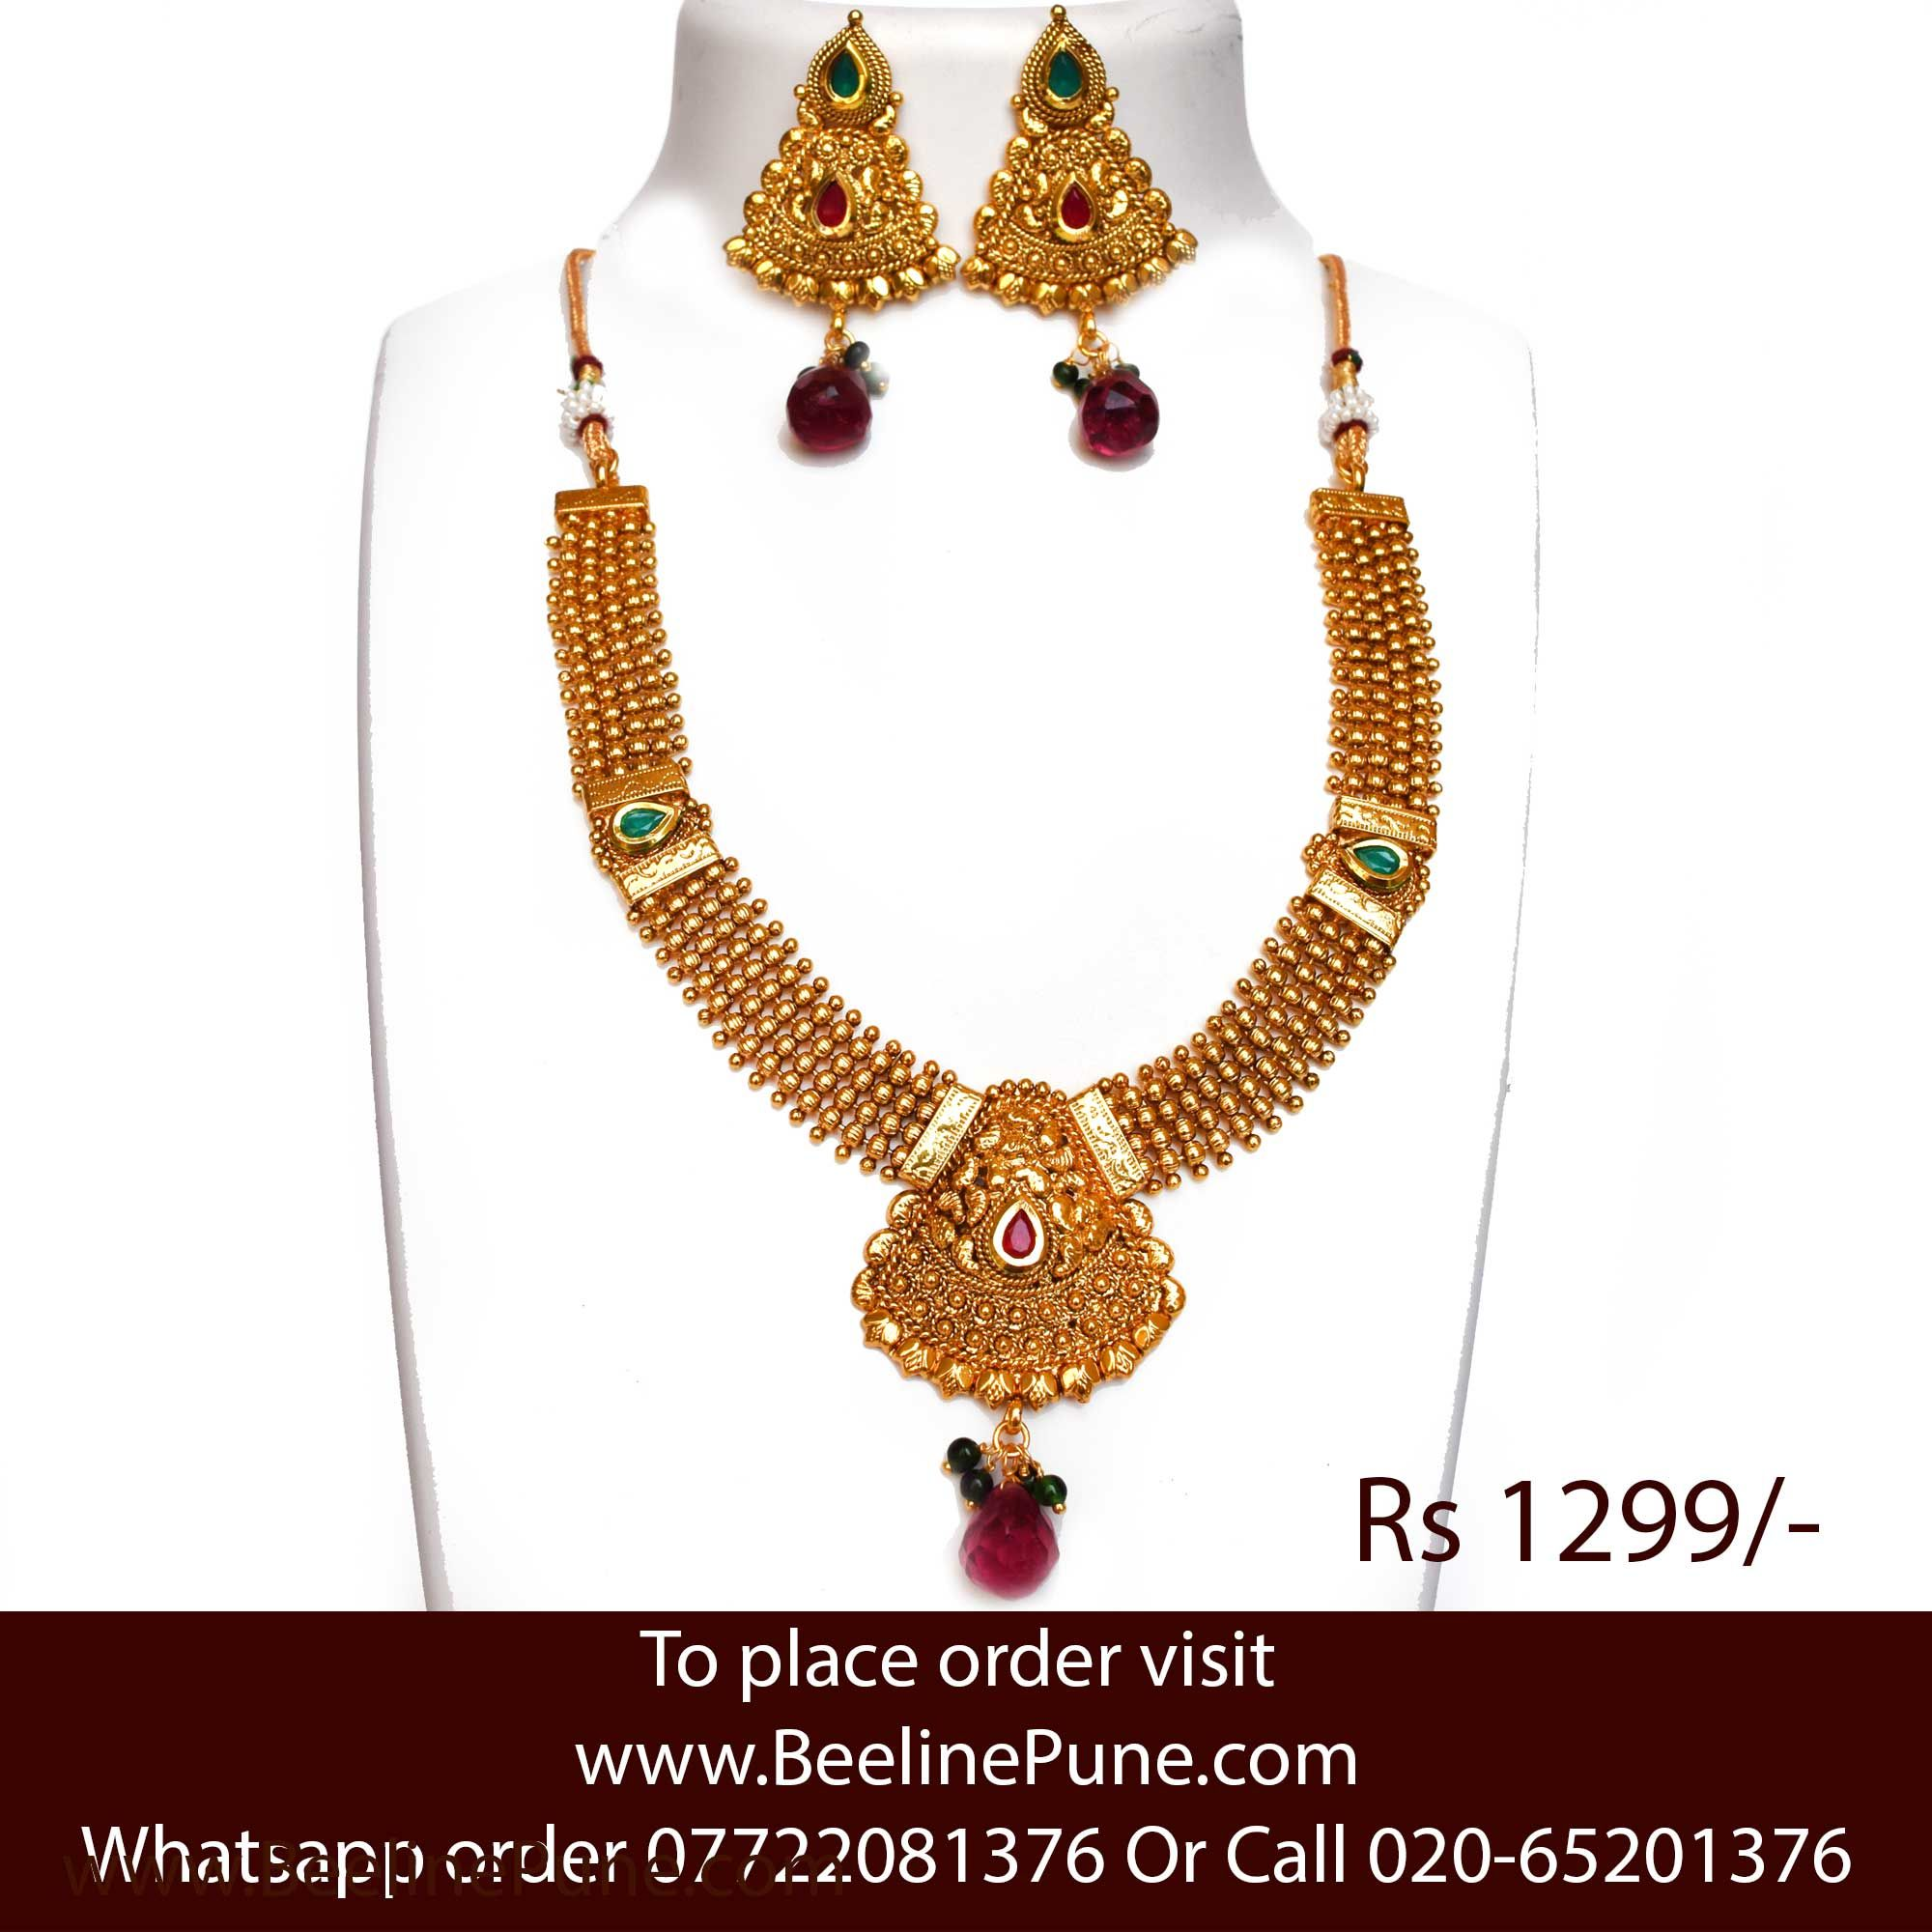 jewellery jewelry bkp fashion indian costume jewels store